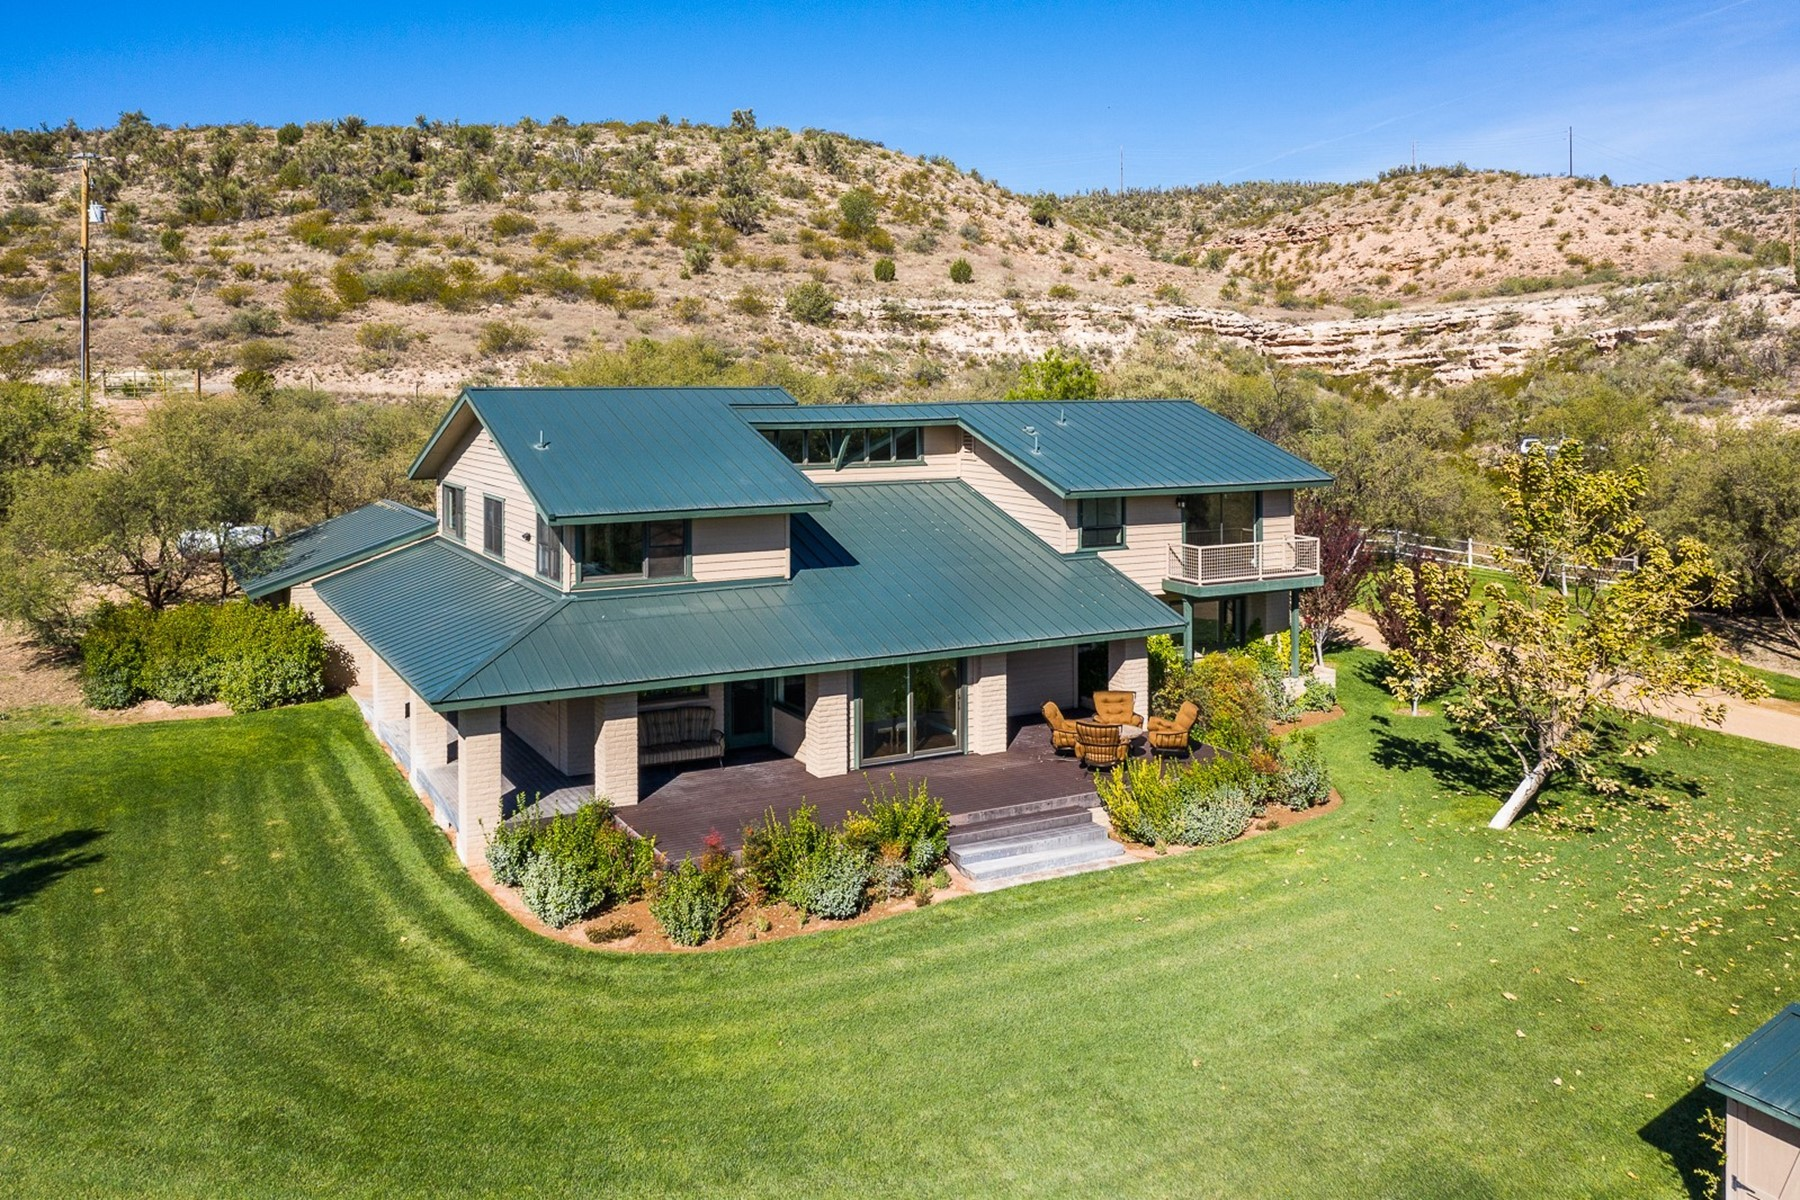 Single Family Homes for Active at Gorgeous New Home in Cornville 2845 S Sexton Ranch Rd Cornville, Arizona 86325 United States